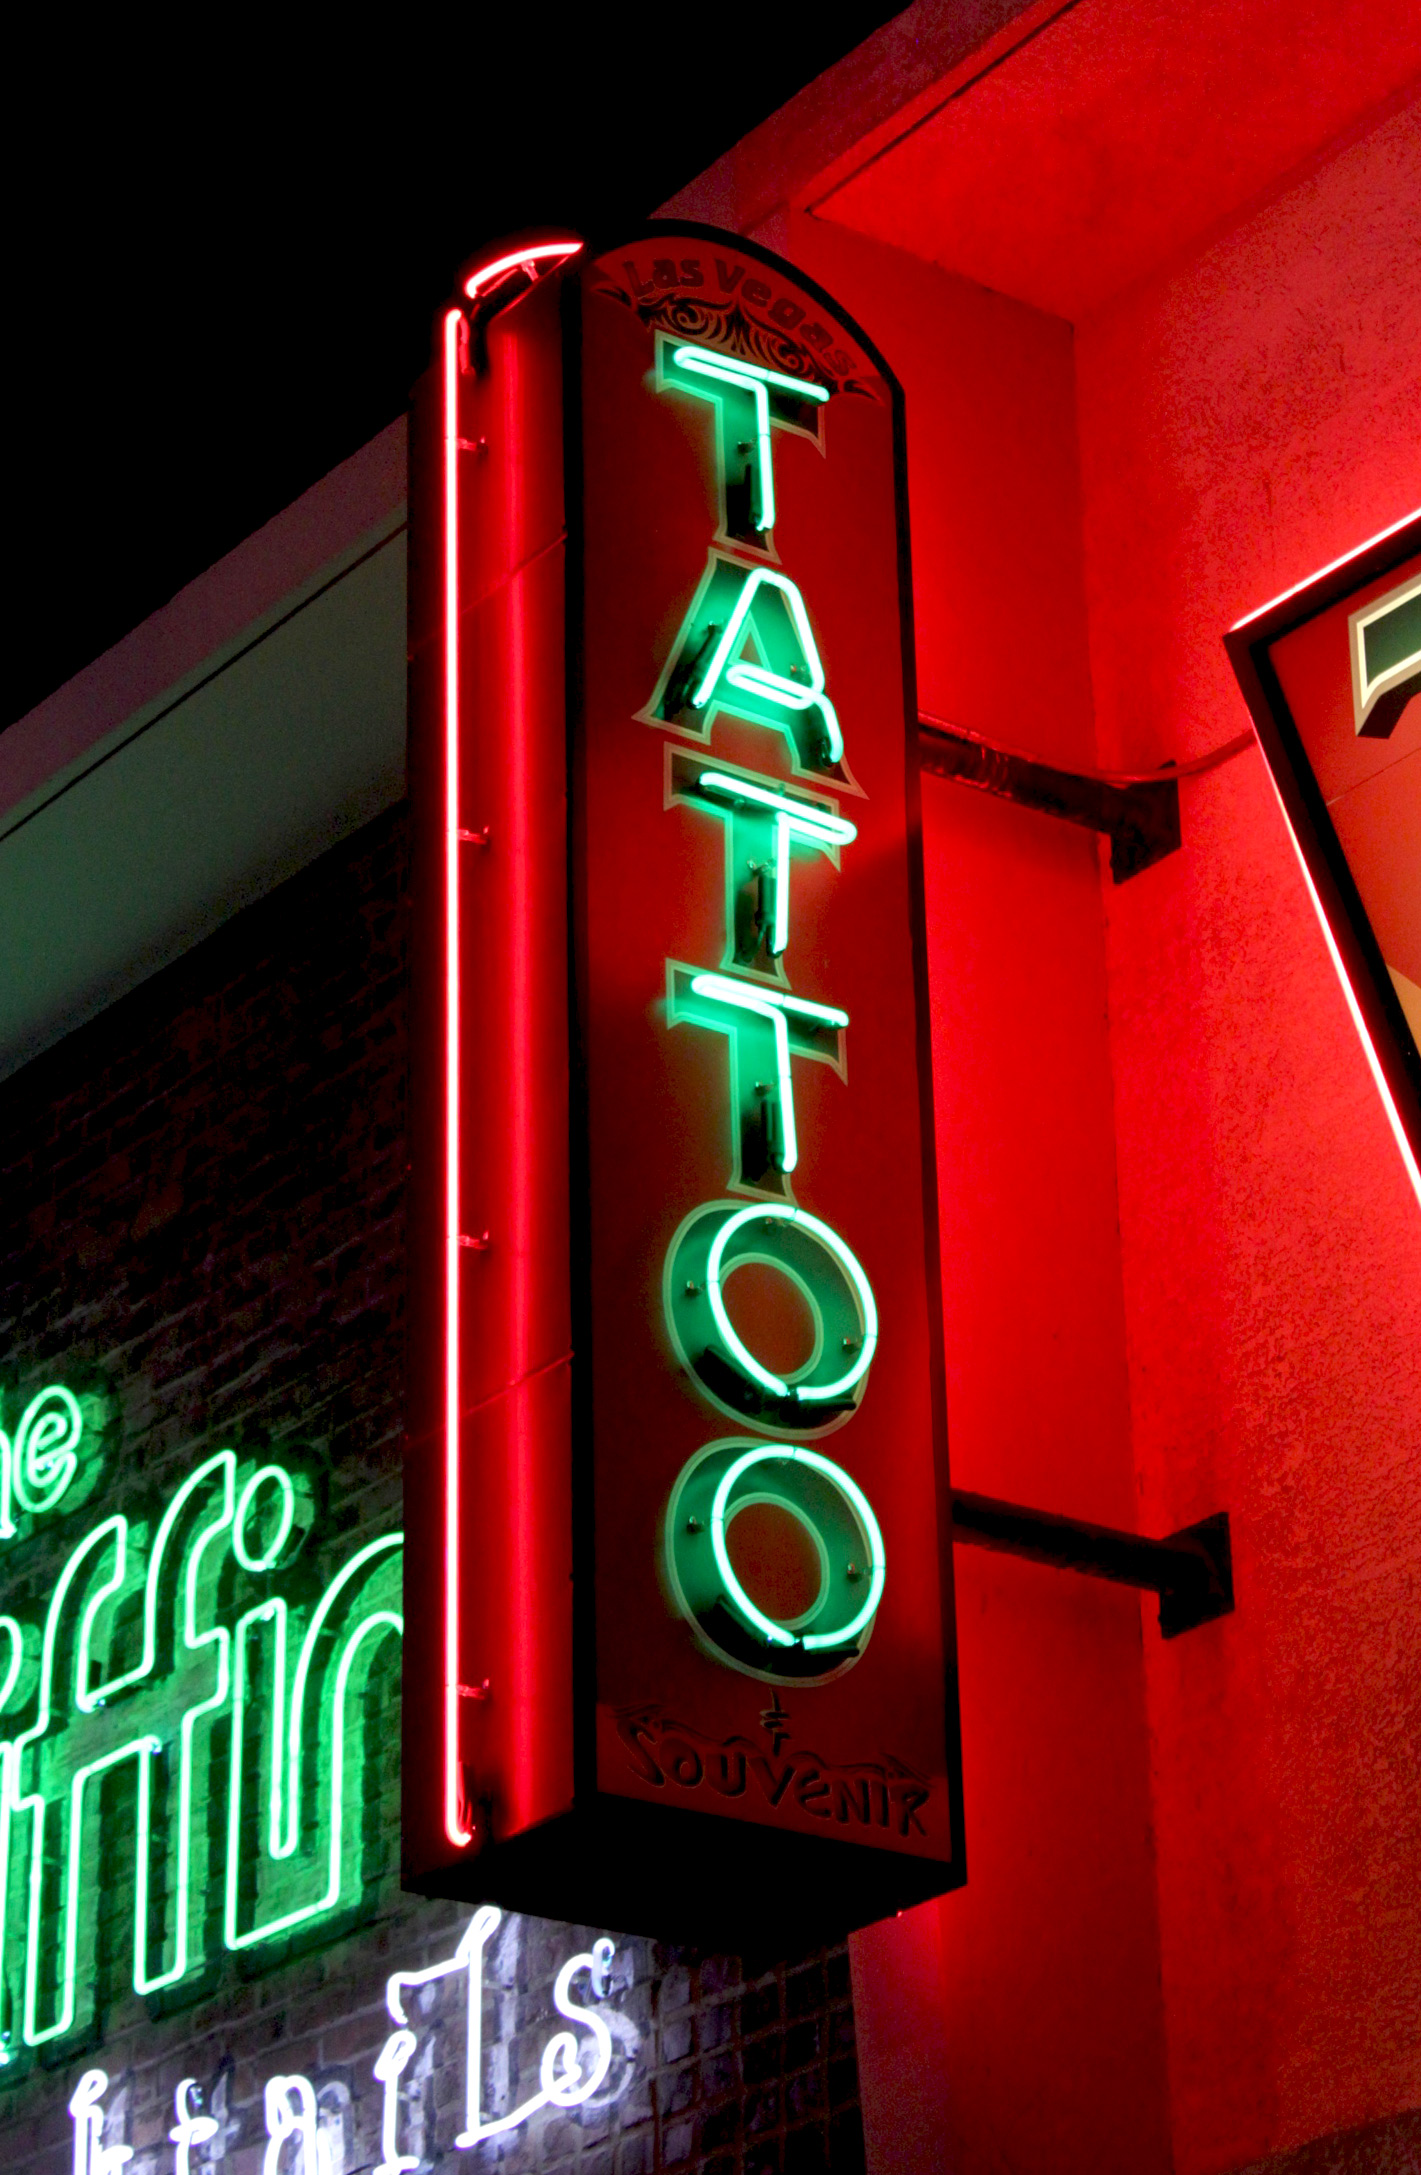 Daily neon las vegas tattoo neon sign at night las for Neon tattoo signs